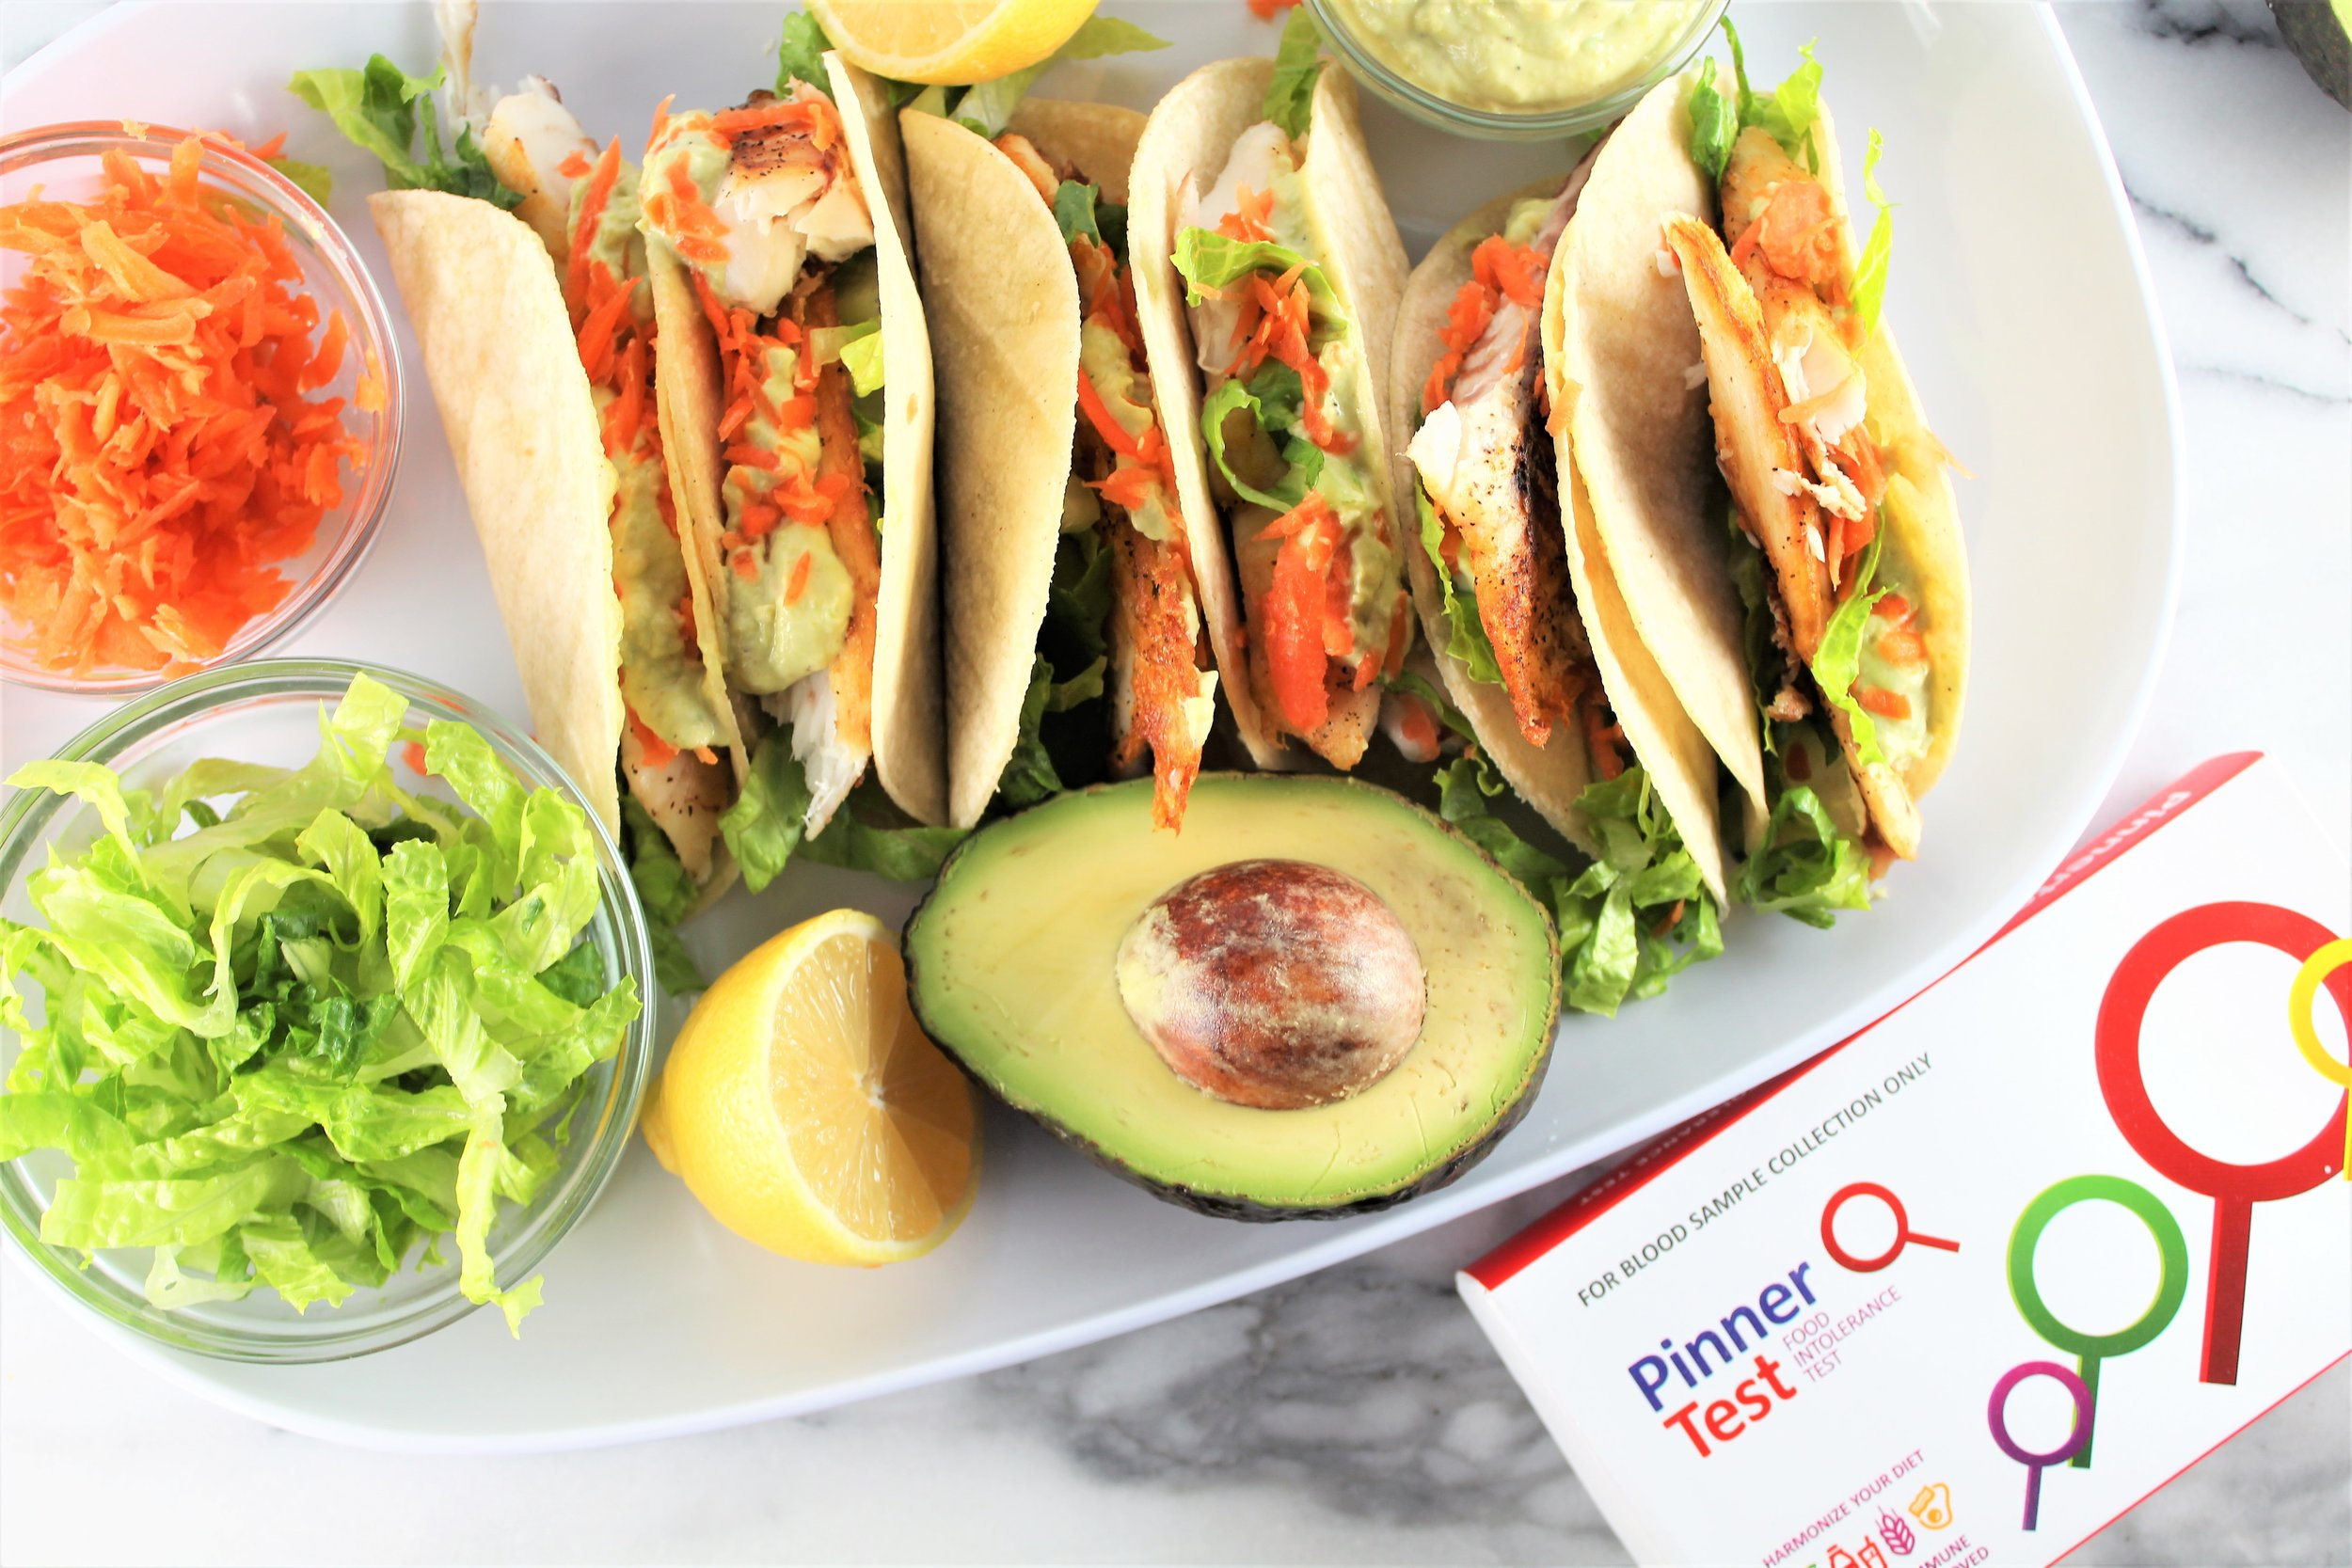 fish tacos with avocado, lettuce, carrots, and pinner test box